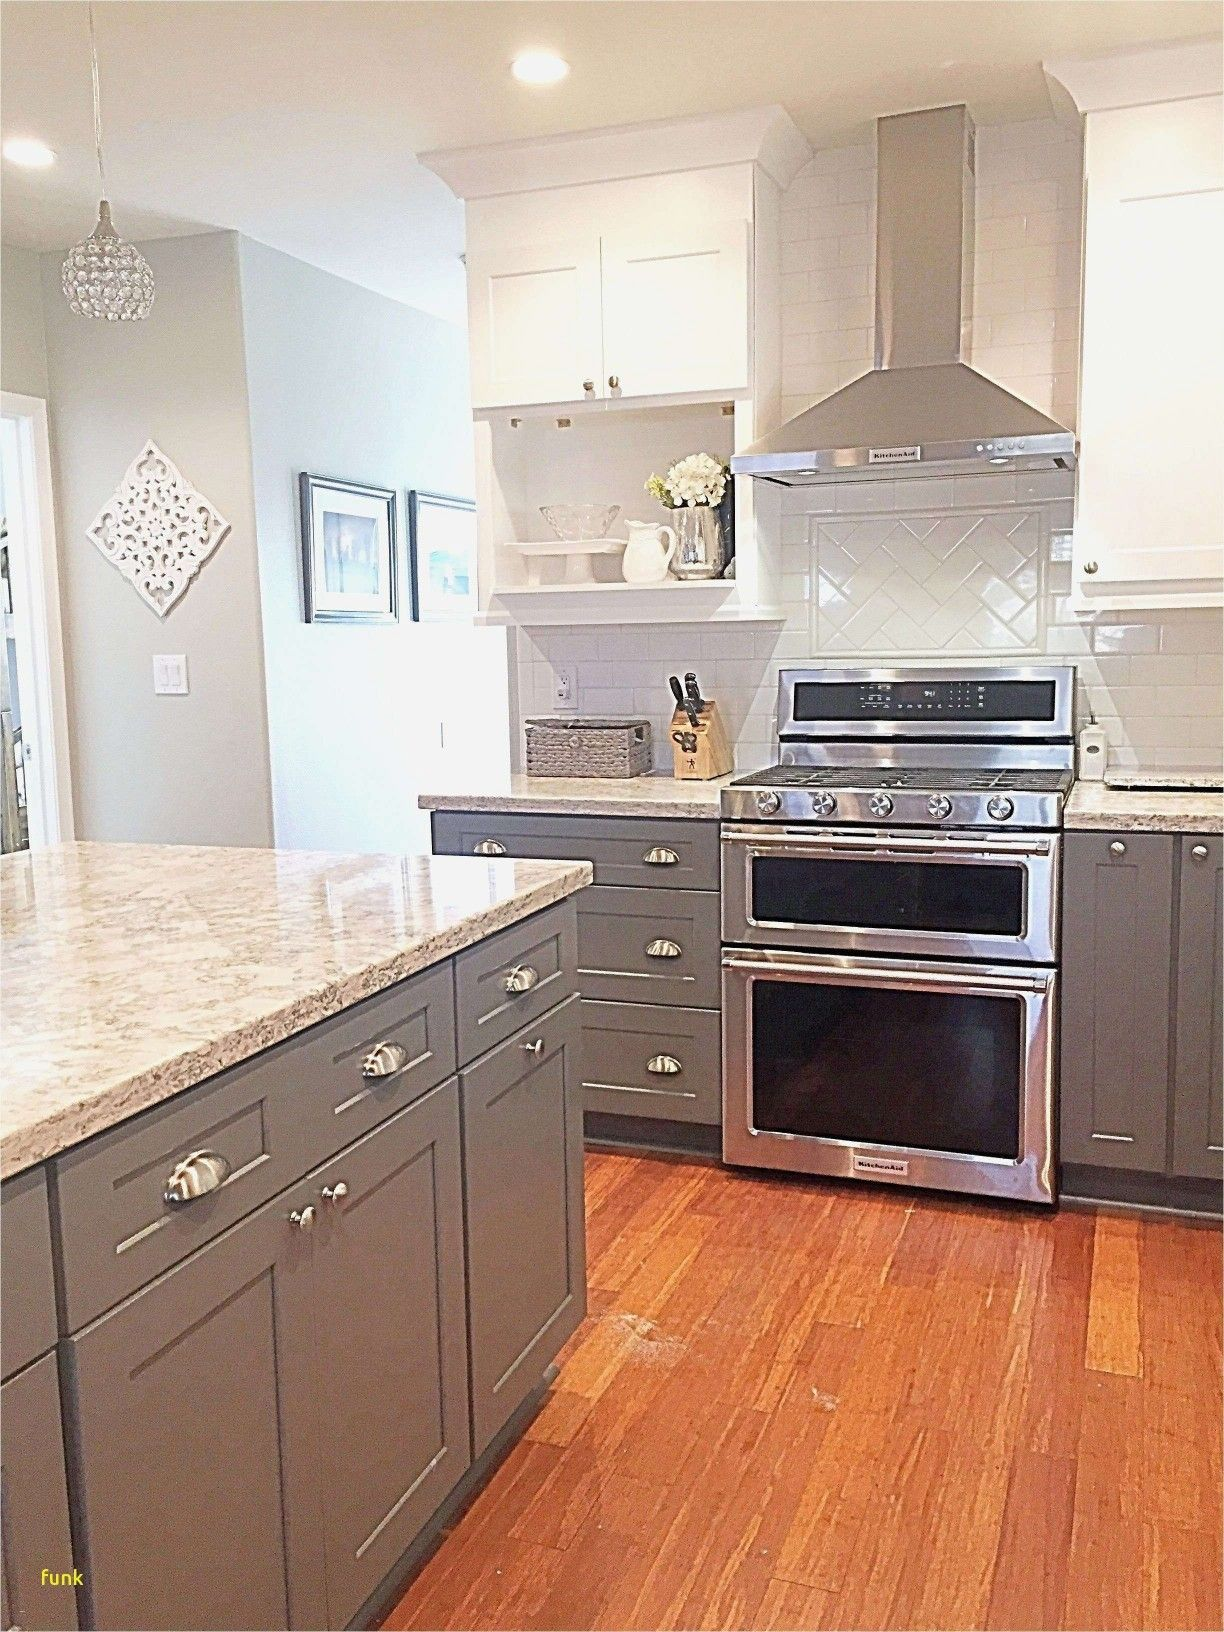 Kitchen Ideas For Small Kitchens Beautiful Kitchen Elegante Kitchen Kitchen Cabinet Trends Kitchen Cabinet Design Kitchen Cabinets Decor